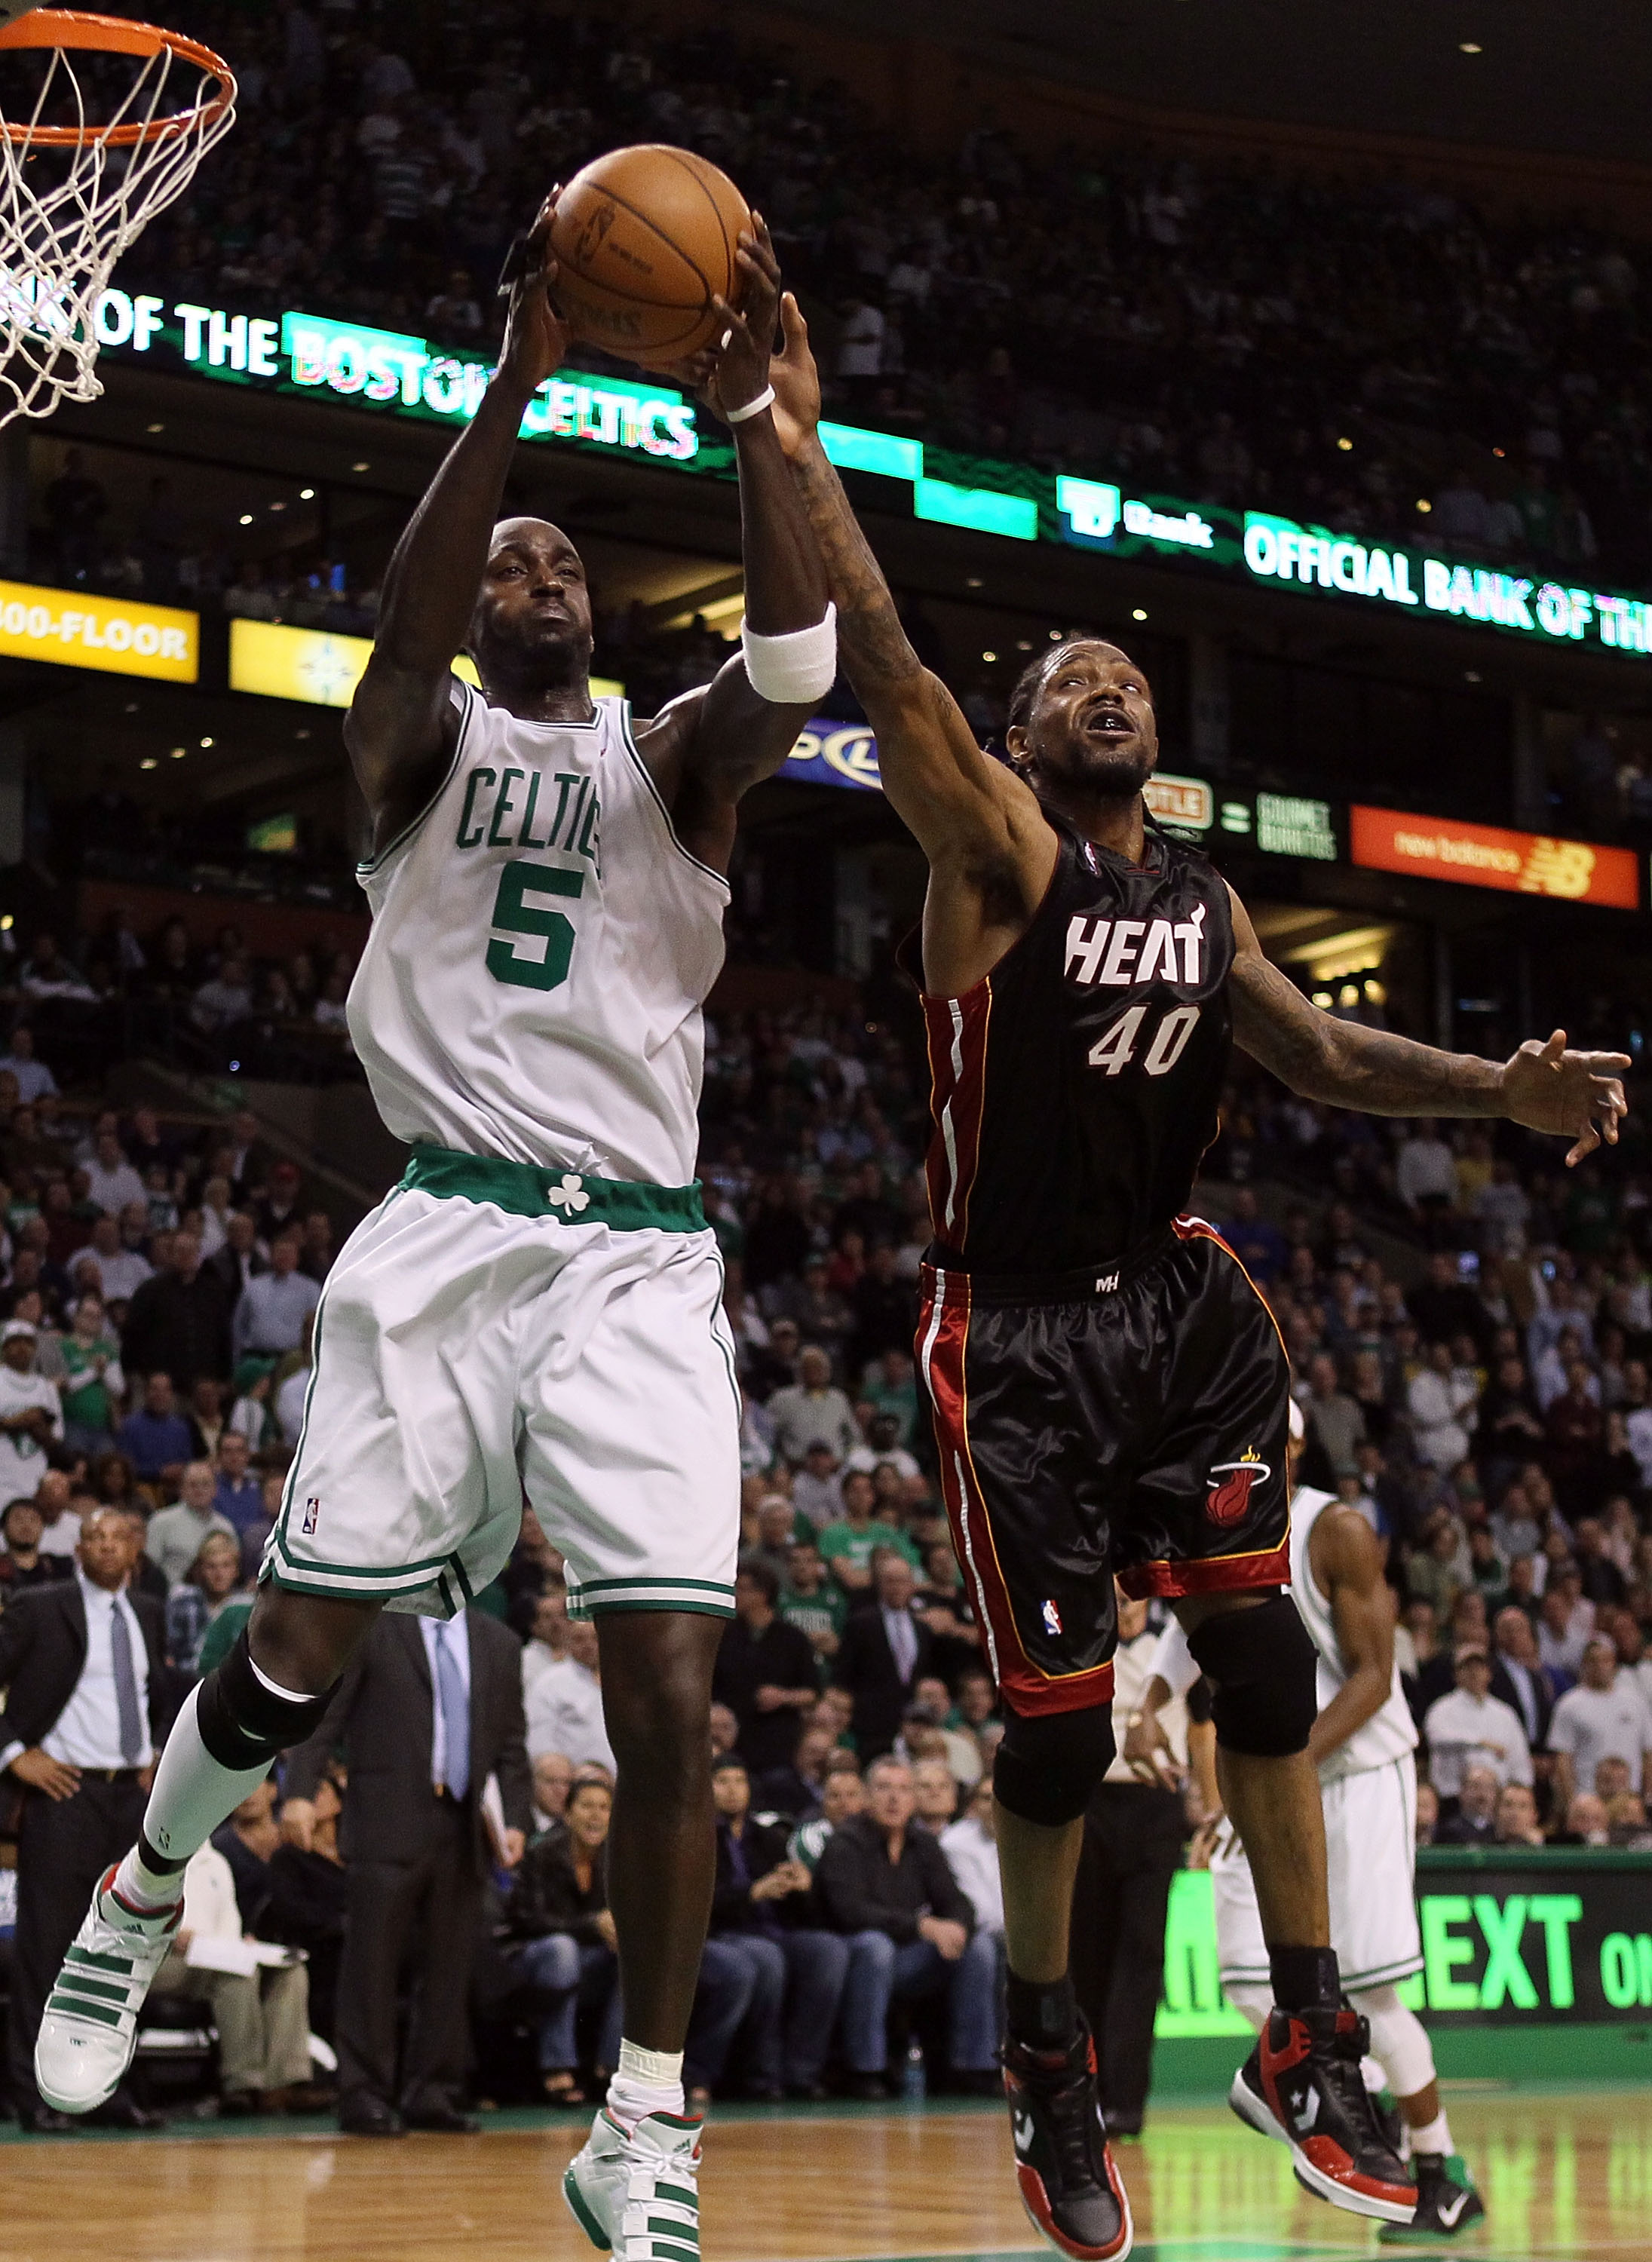 BOSTON - APRIL 27:  Kevin Garnett #5 of the Boston Celtics nabs the rebound from Udonis Haslem #40 of the Miami Heat during Game Five of the Eastern Conference Quarterfinals of the 2010 NBA playoffs at the TD Garden on April 27, 2010 in Boston, Massachuse